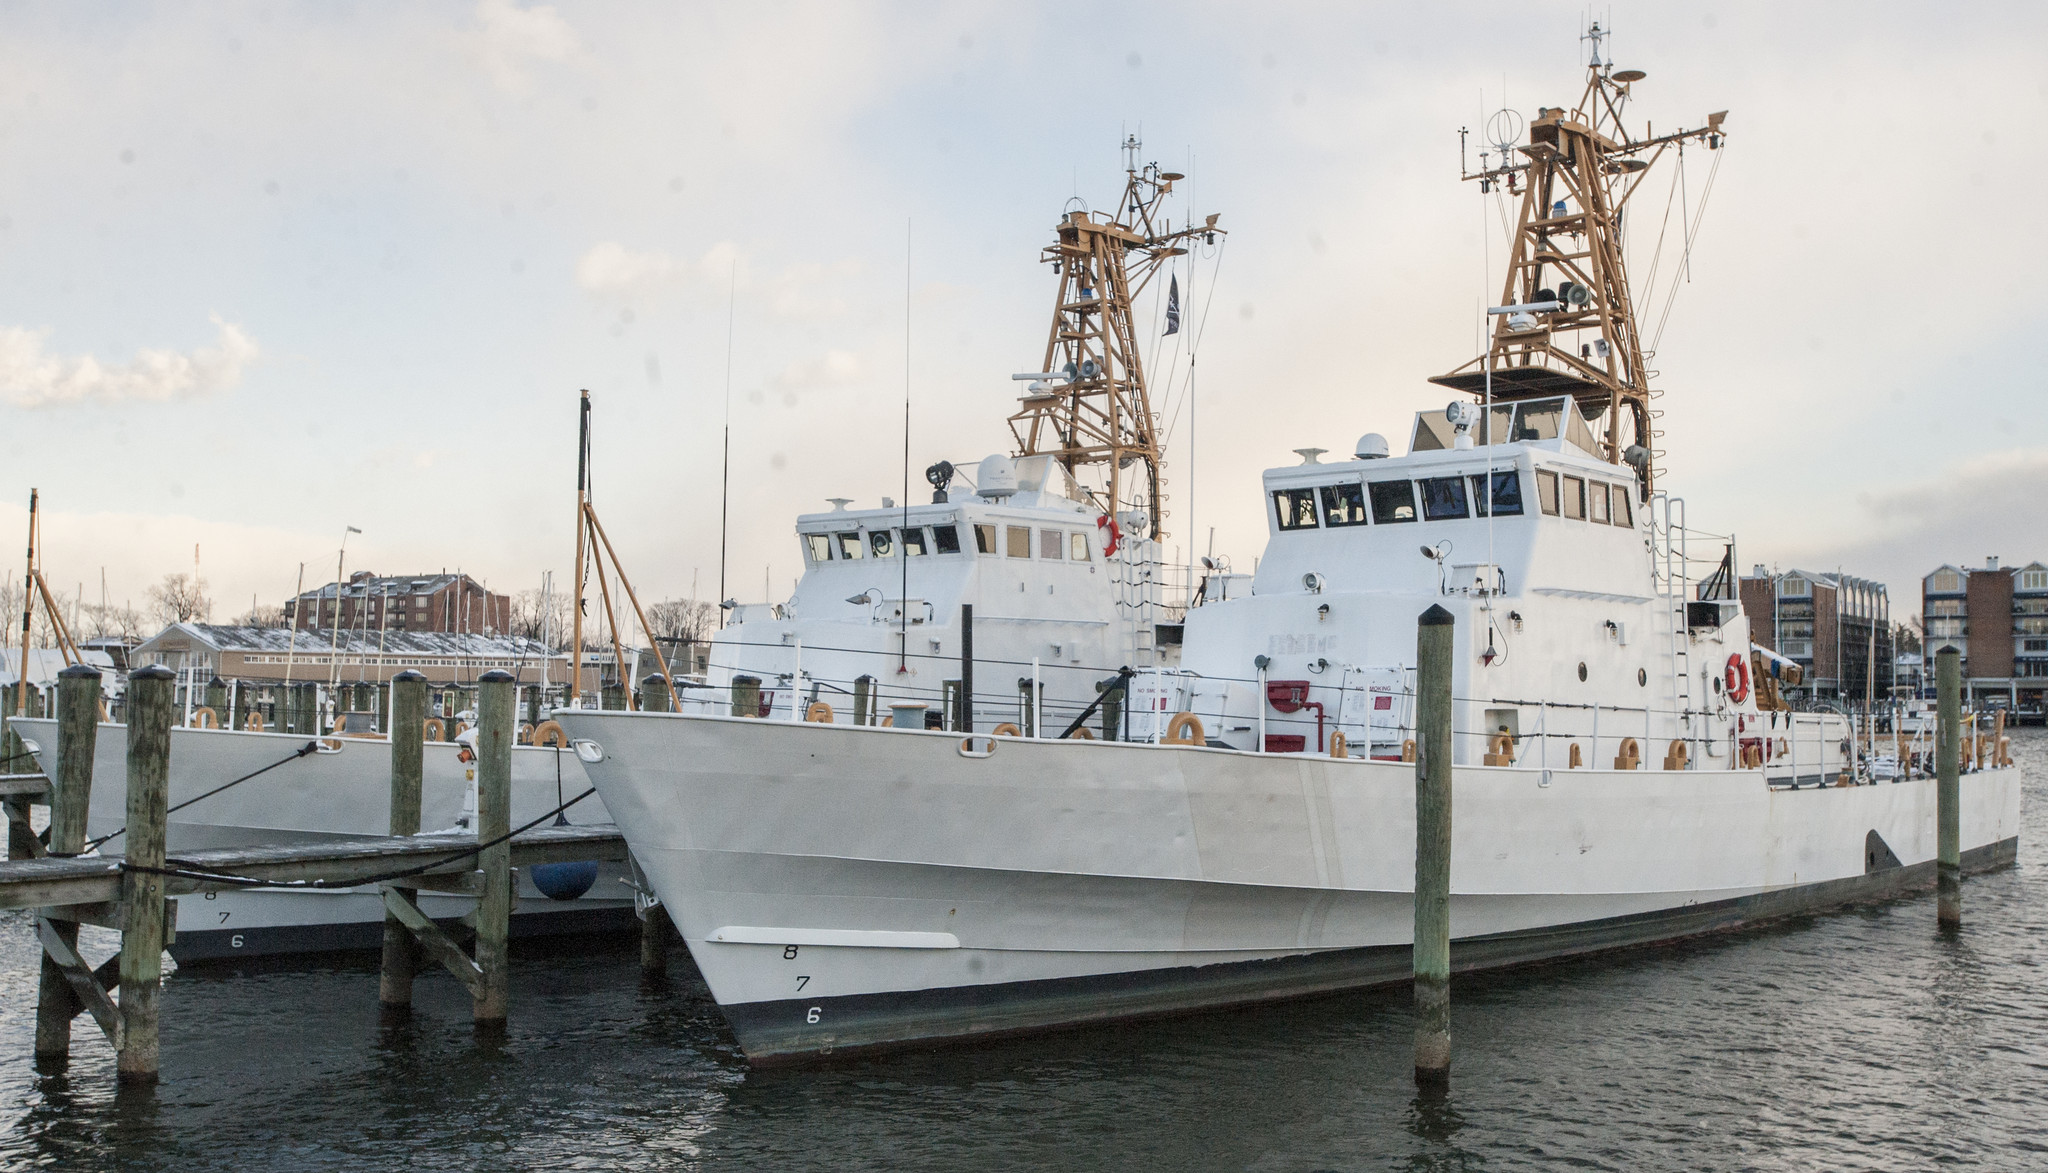 A Pair Of Cutters Spark Curiosity In Downtown Annapolis